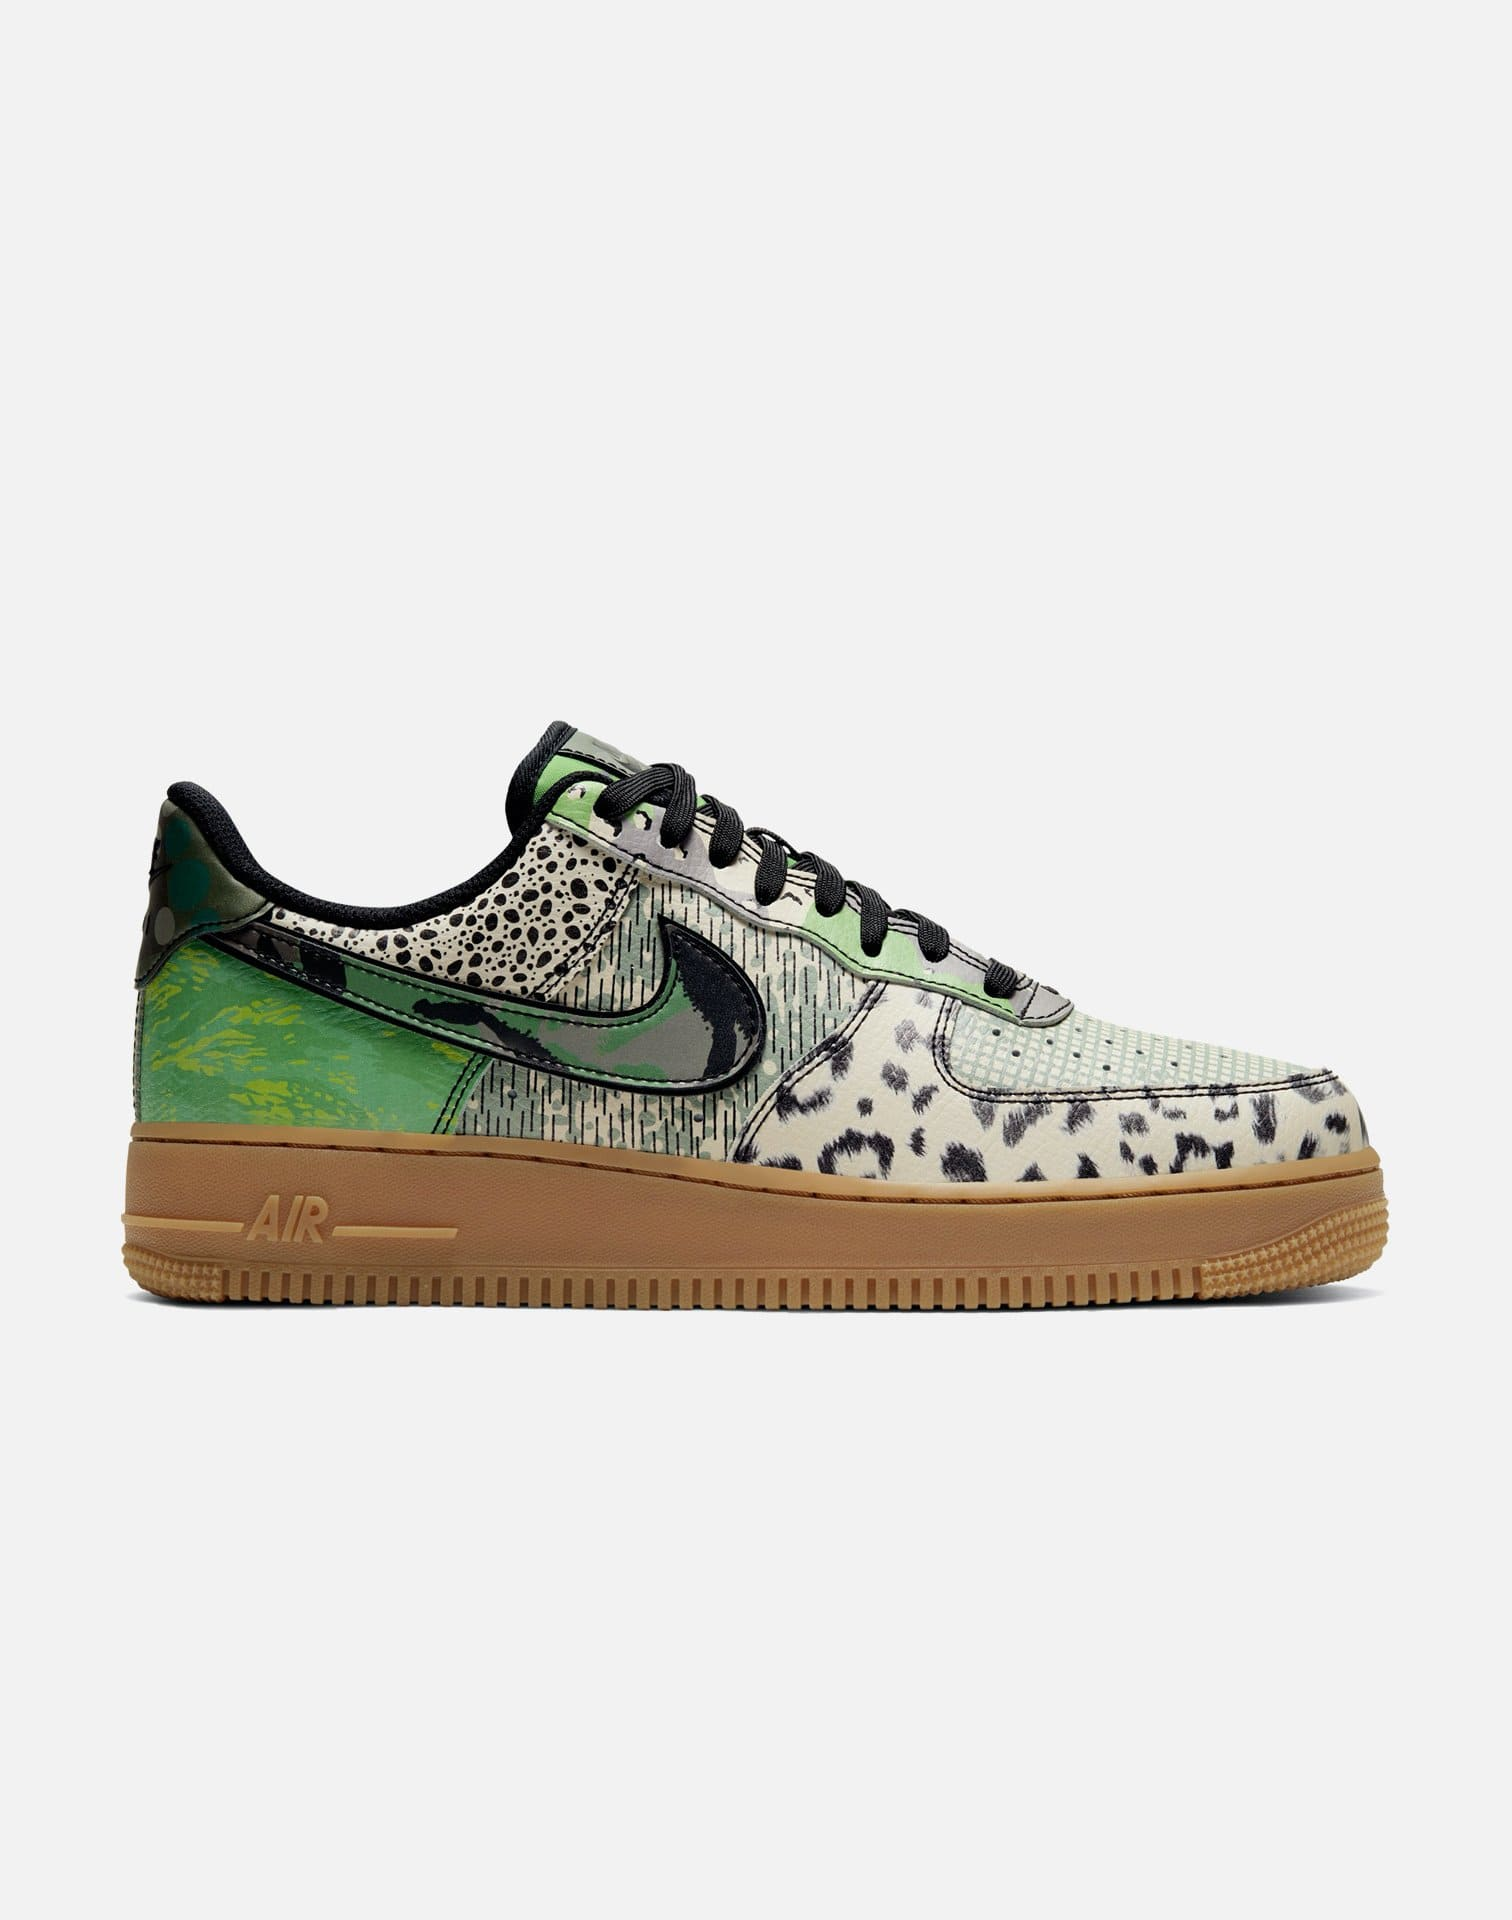 Nike AIR FORCE 1 '07 LOW QS 'CITY OF DREAMS'